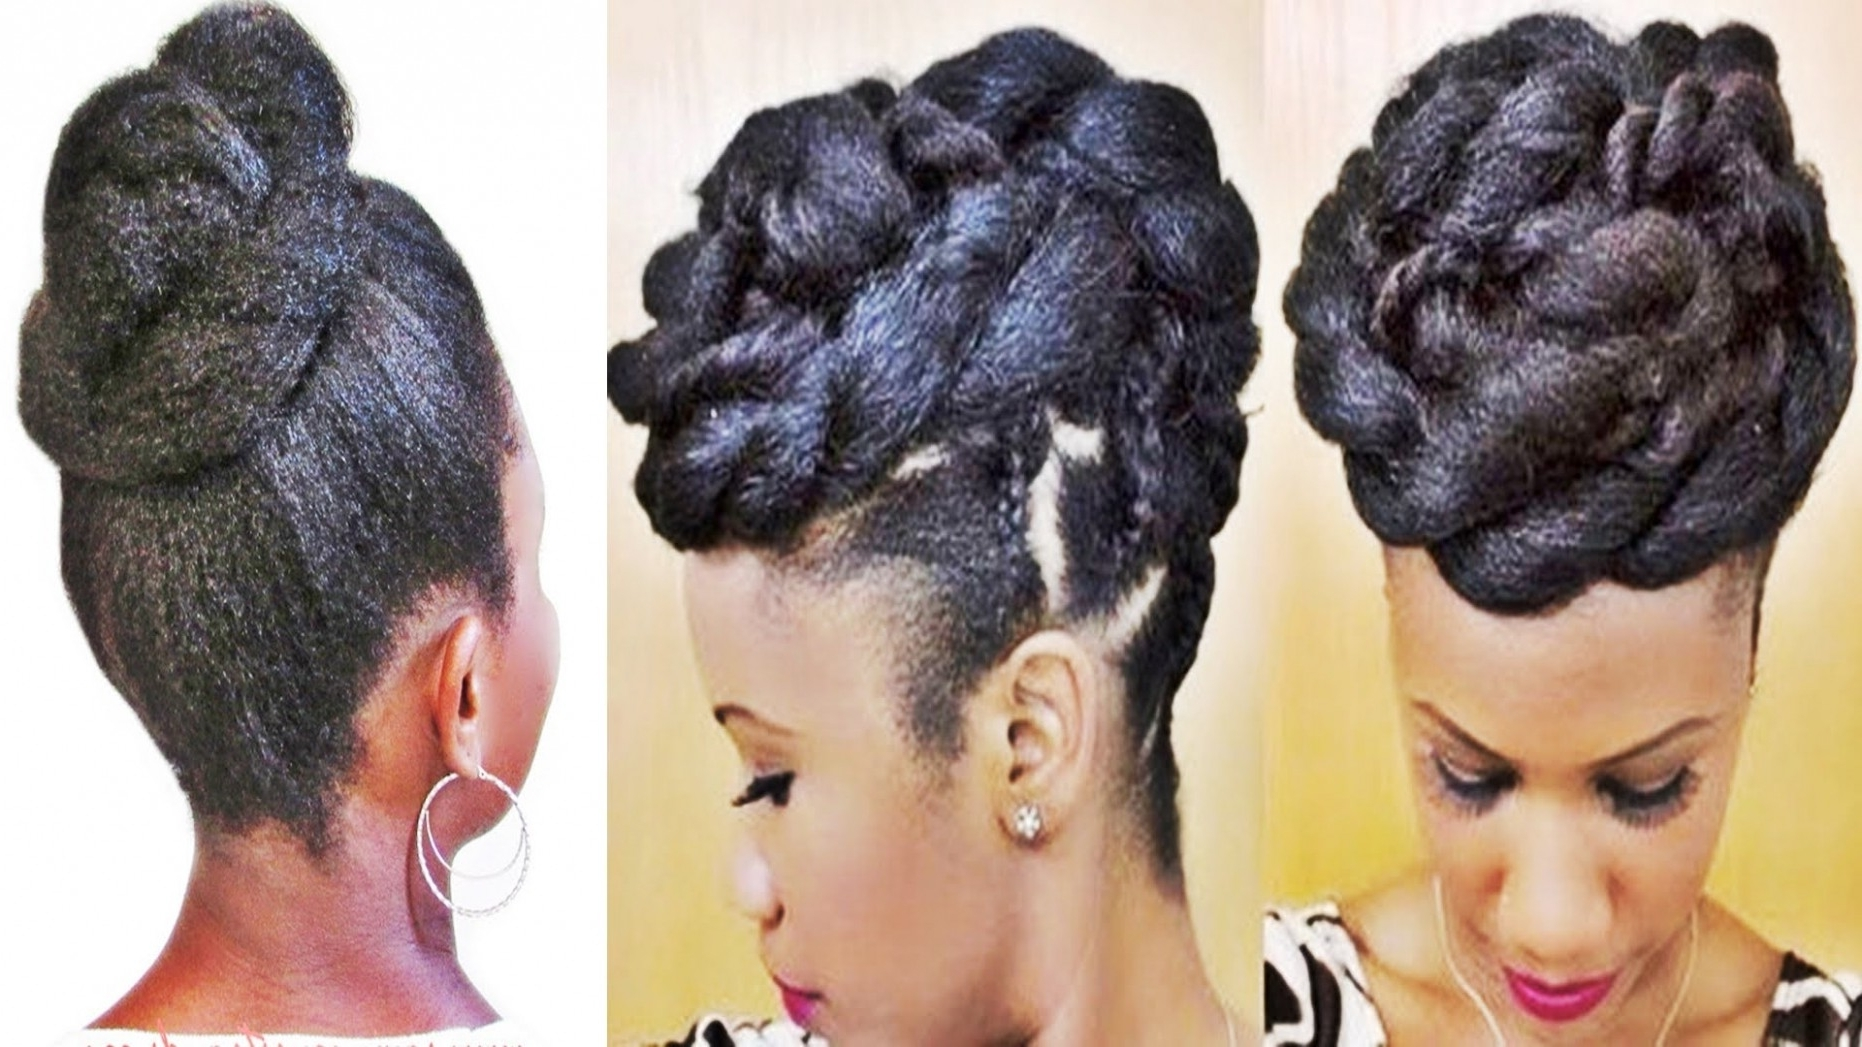 Braids And Twists Updo Hairstyle For Black Women – Youtube – Braided Intended For Famous Black Braided Bun Hairstyles (View 6 of 15)